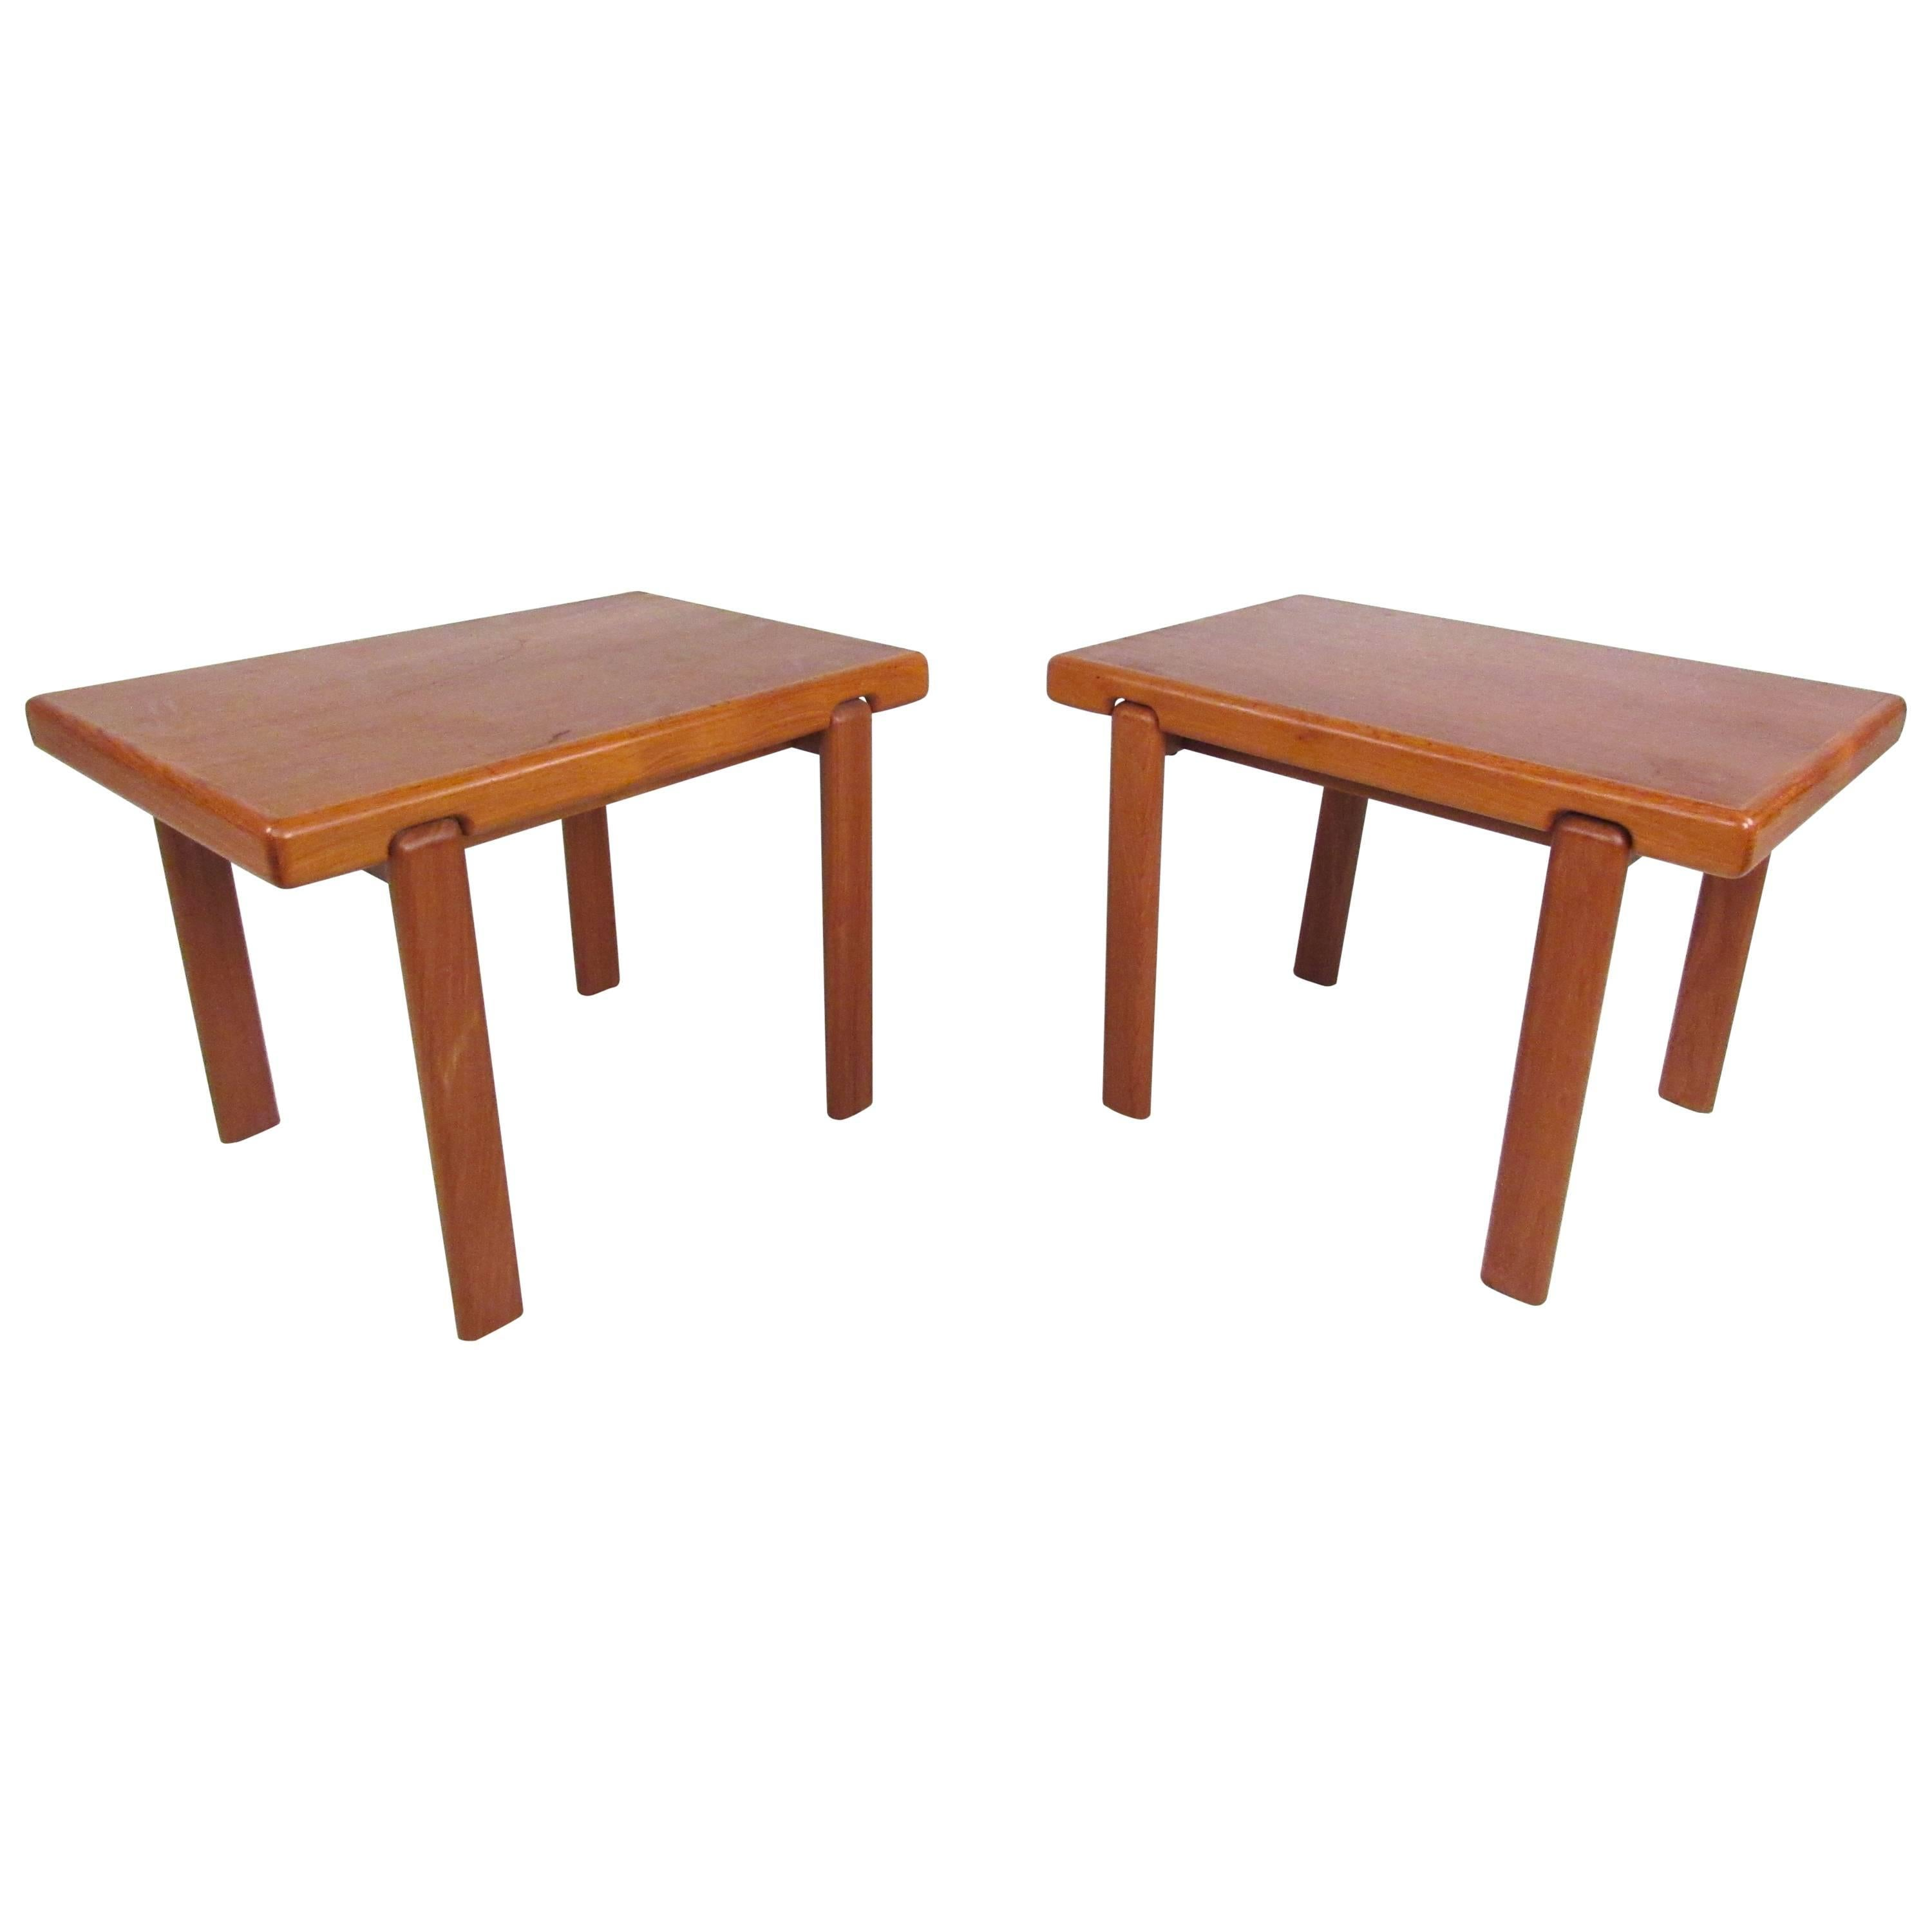 Pair of Danish Modern Solid Teak End Tables by Trioh Mobler